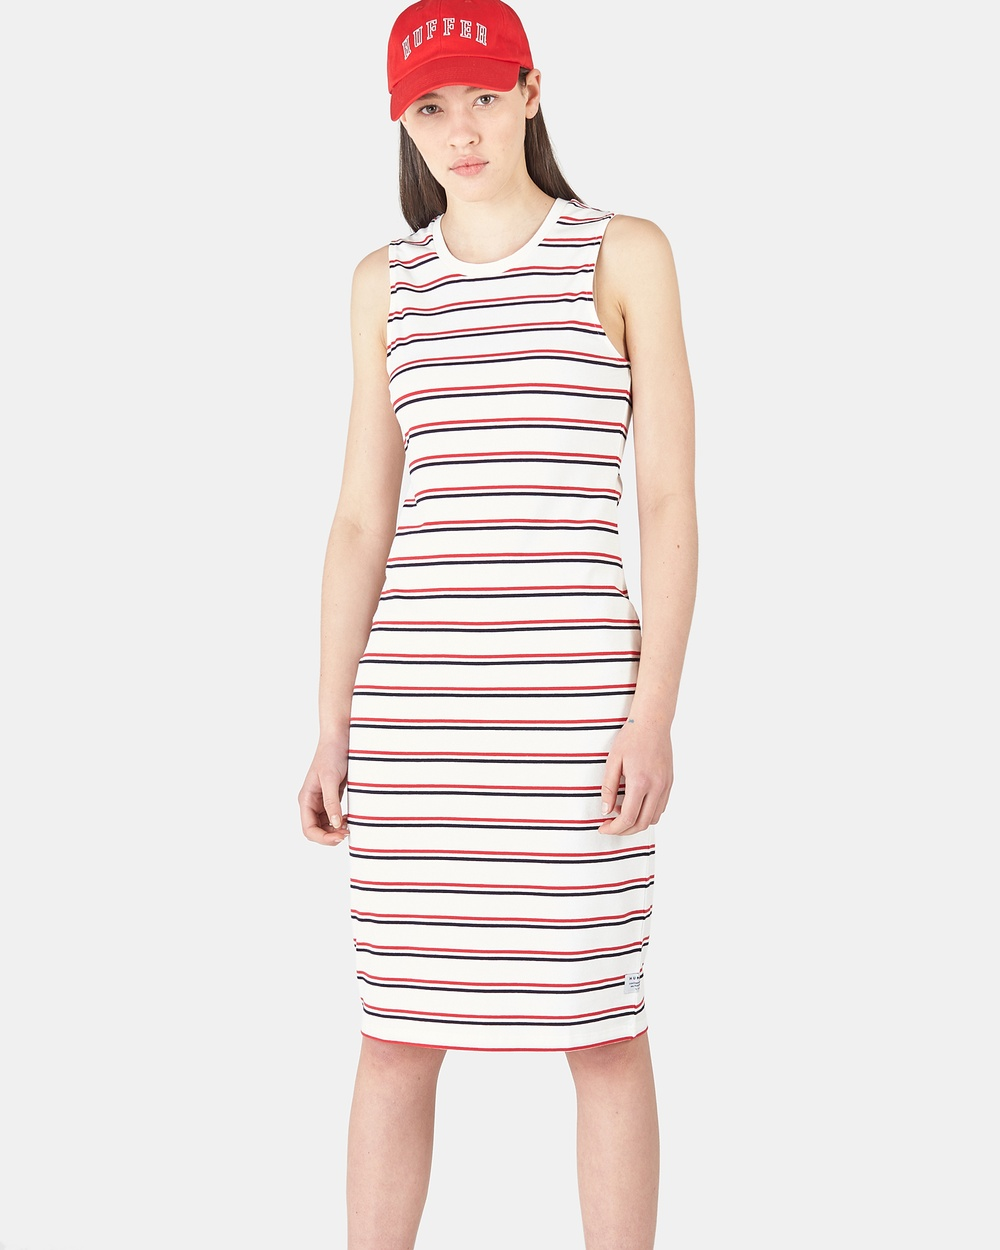 Huffer NAVY/RED Fresh Stella Dress